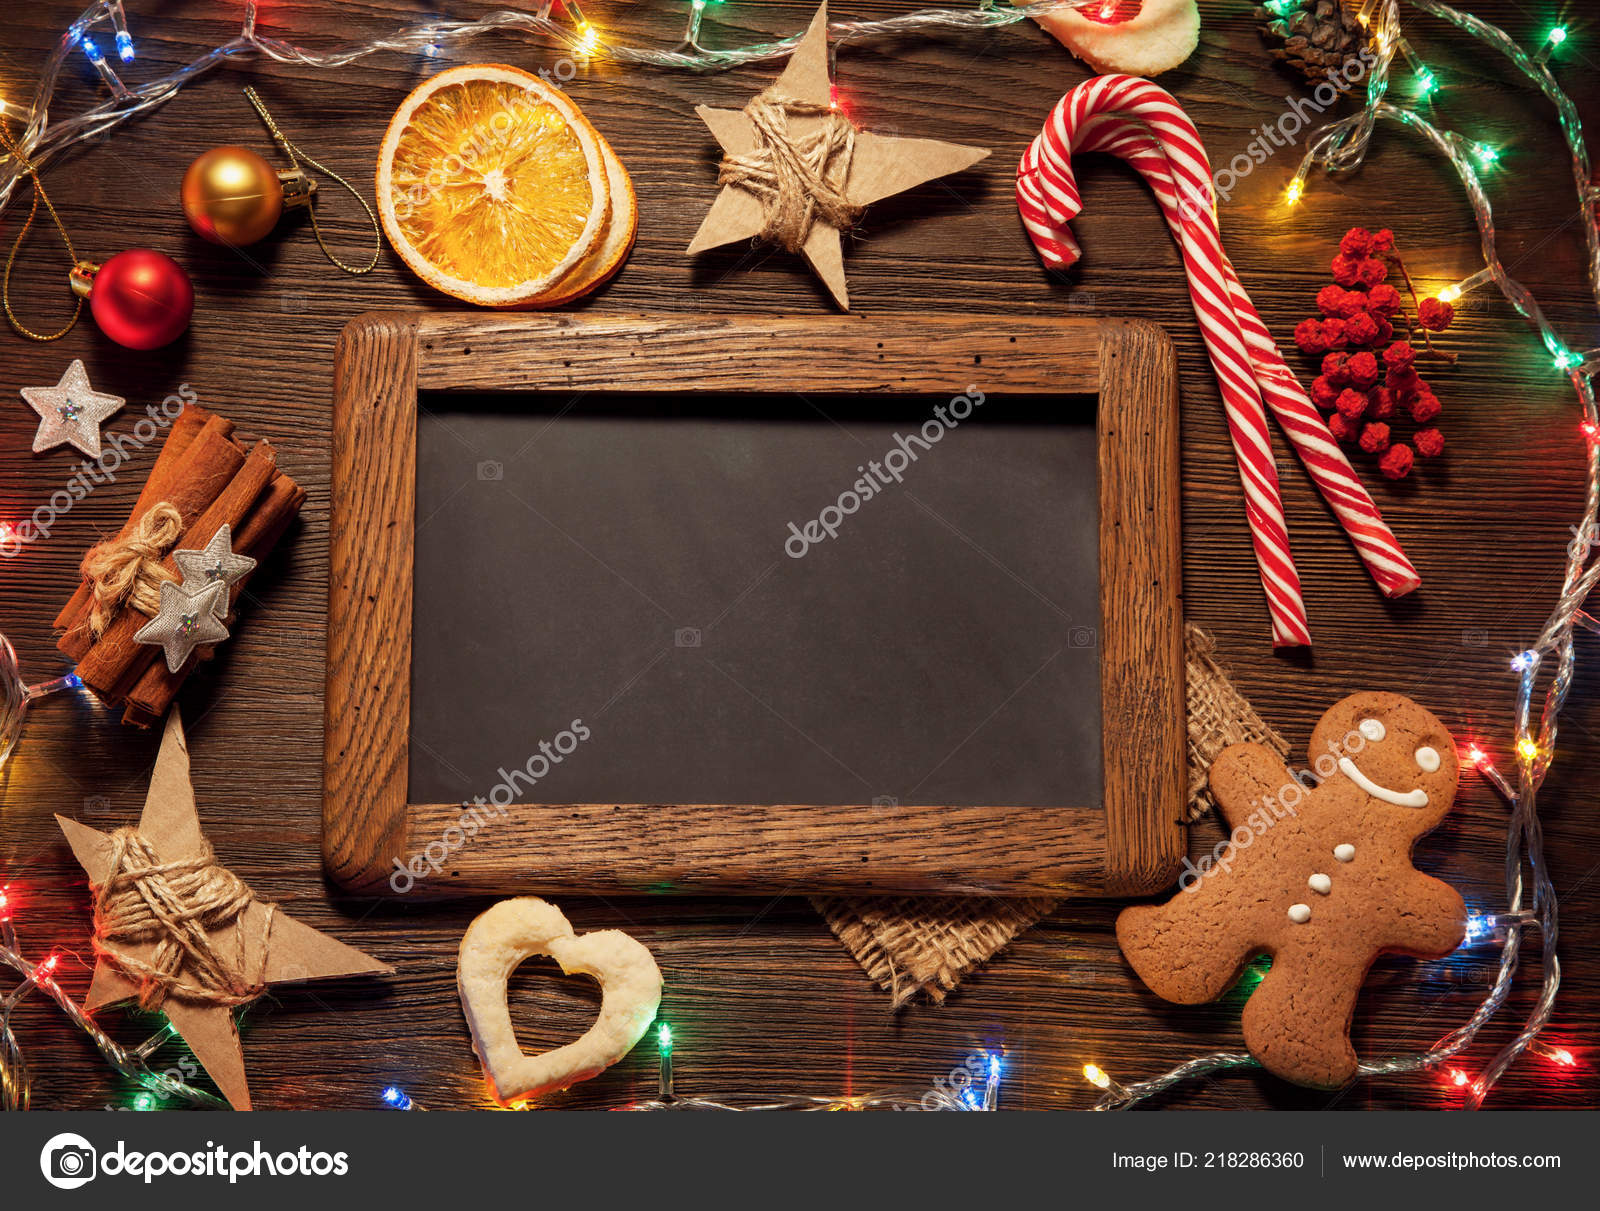 Empty Chalkboard Frame Gingerbread Christmas Decorations Wooden Table Top View — Stock Photo